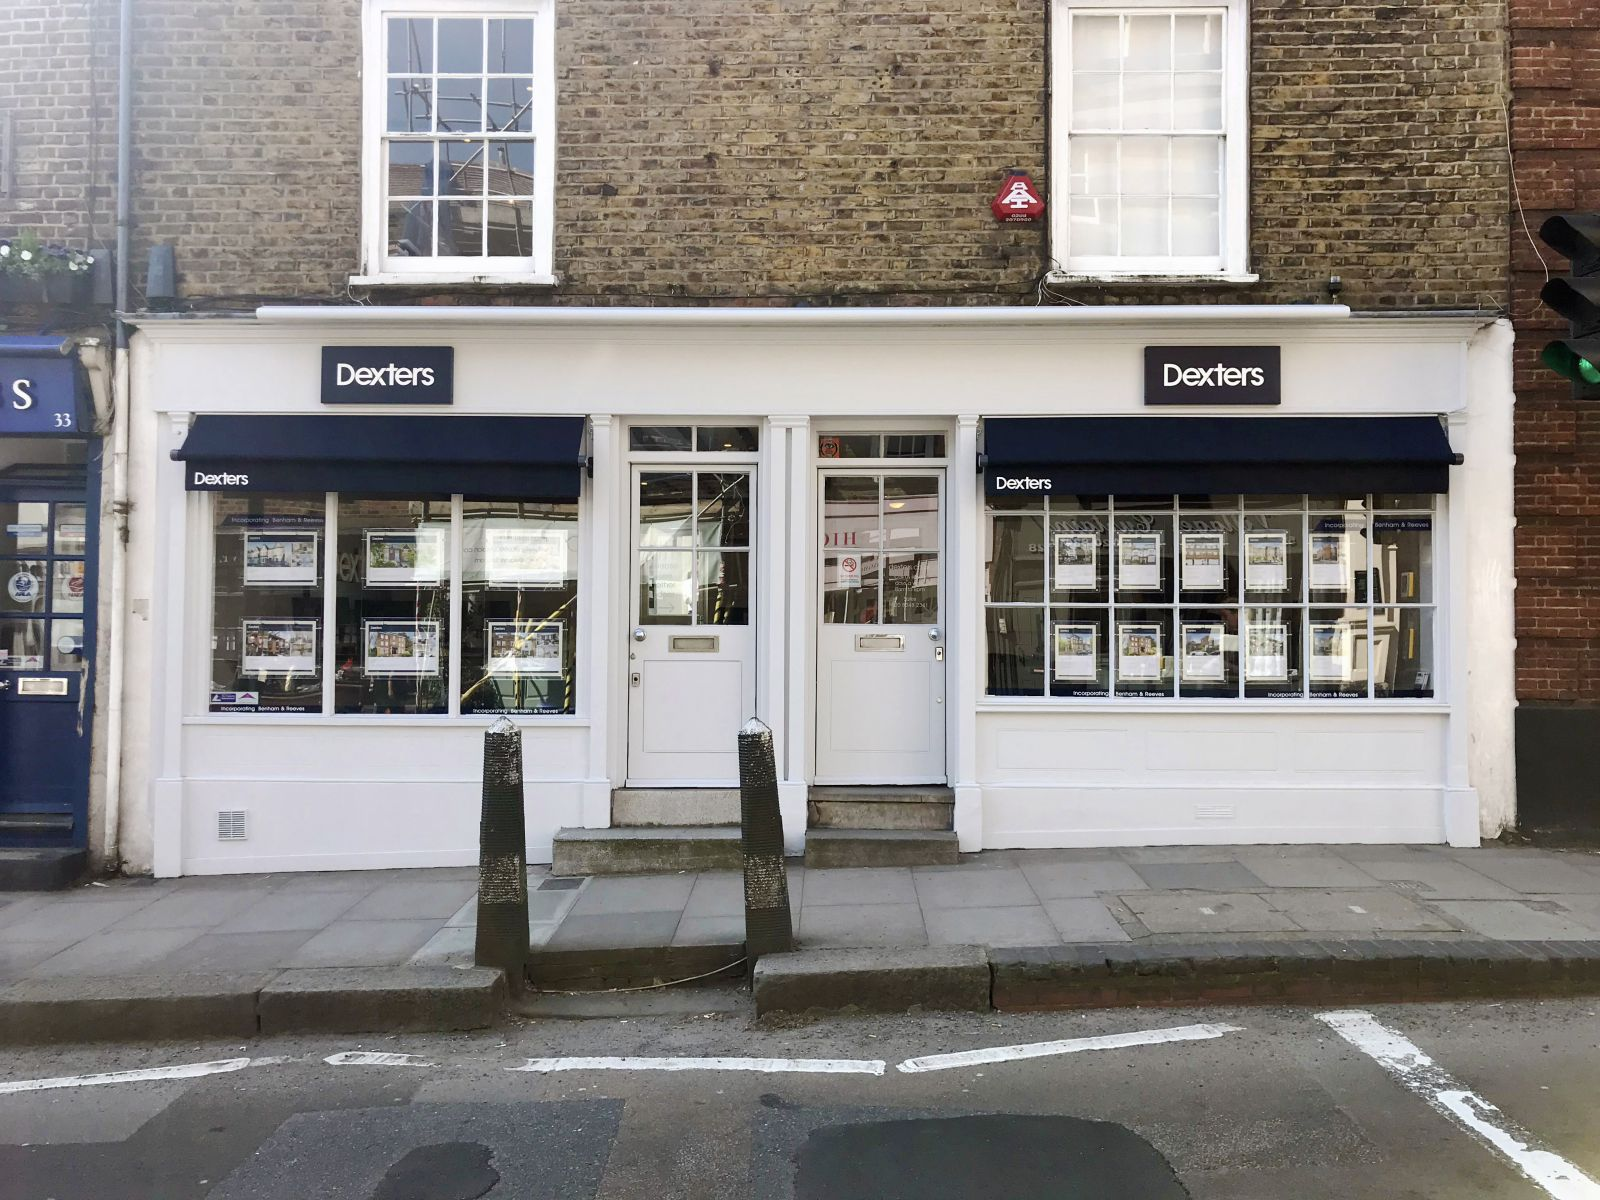 Dexters Estate Agents Highgate - London, London N6 5JT - 020 8545 8584 | ShowMeLocal.com